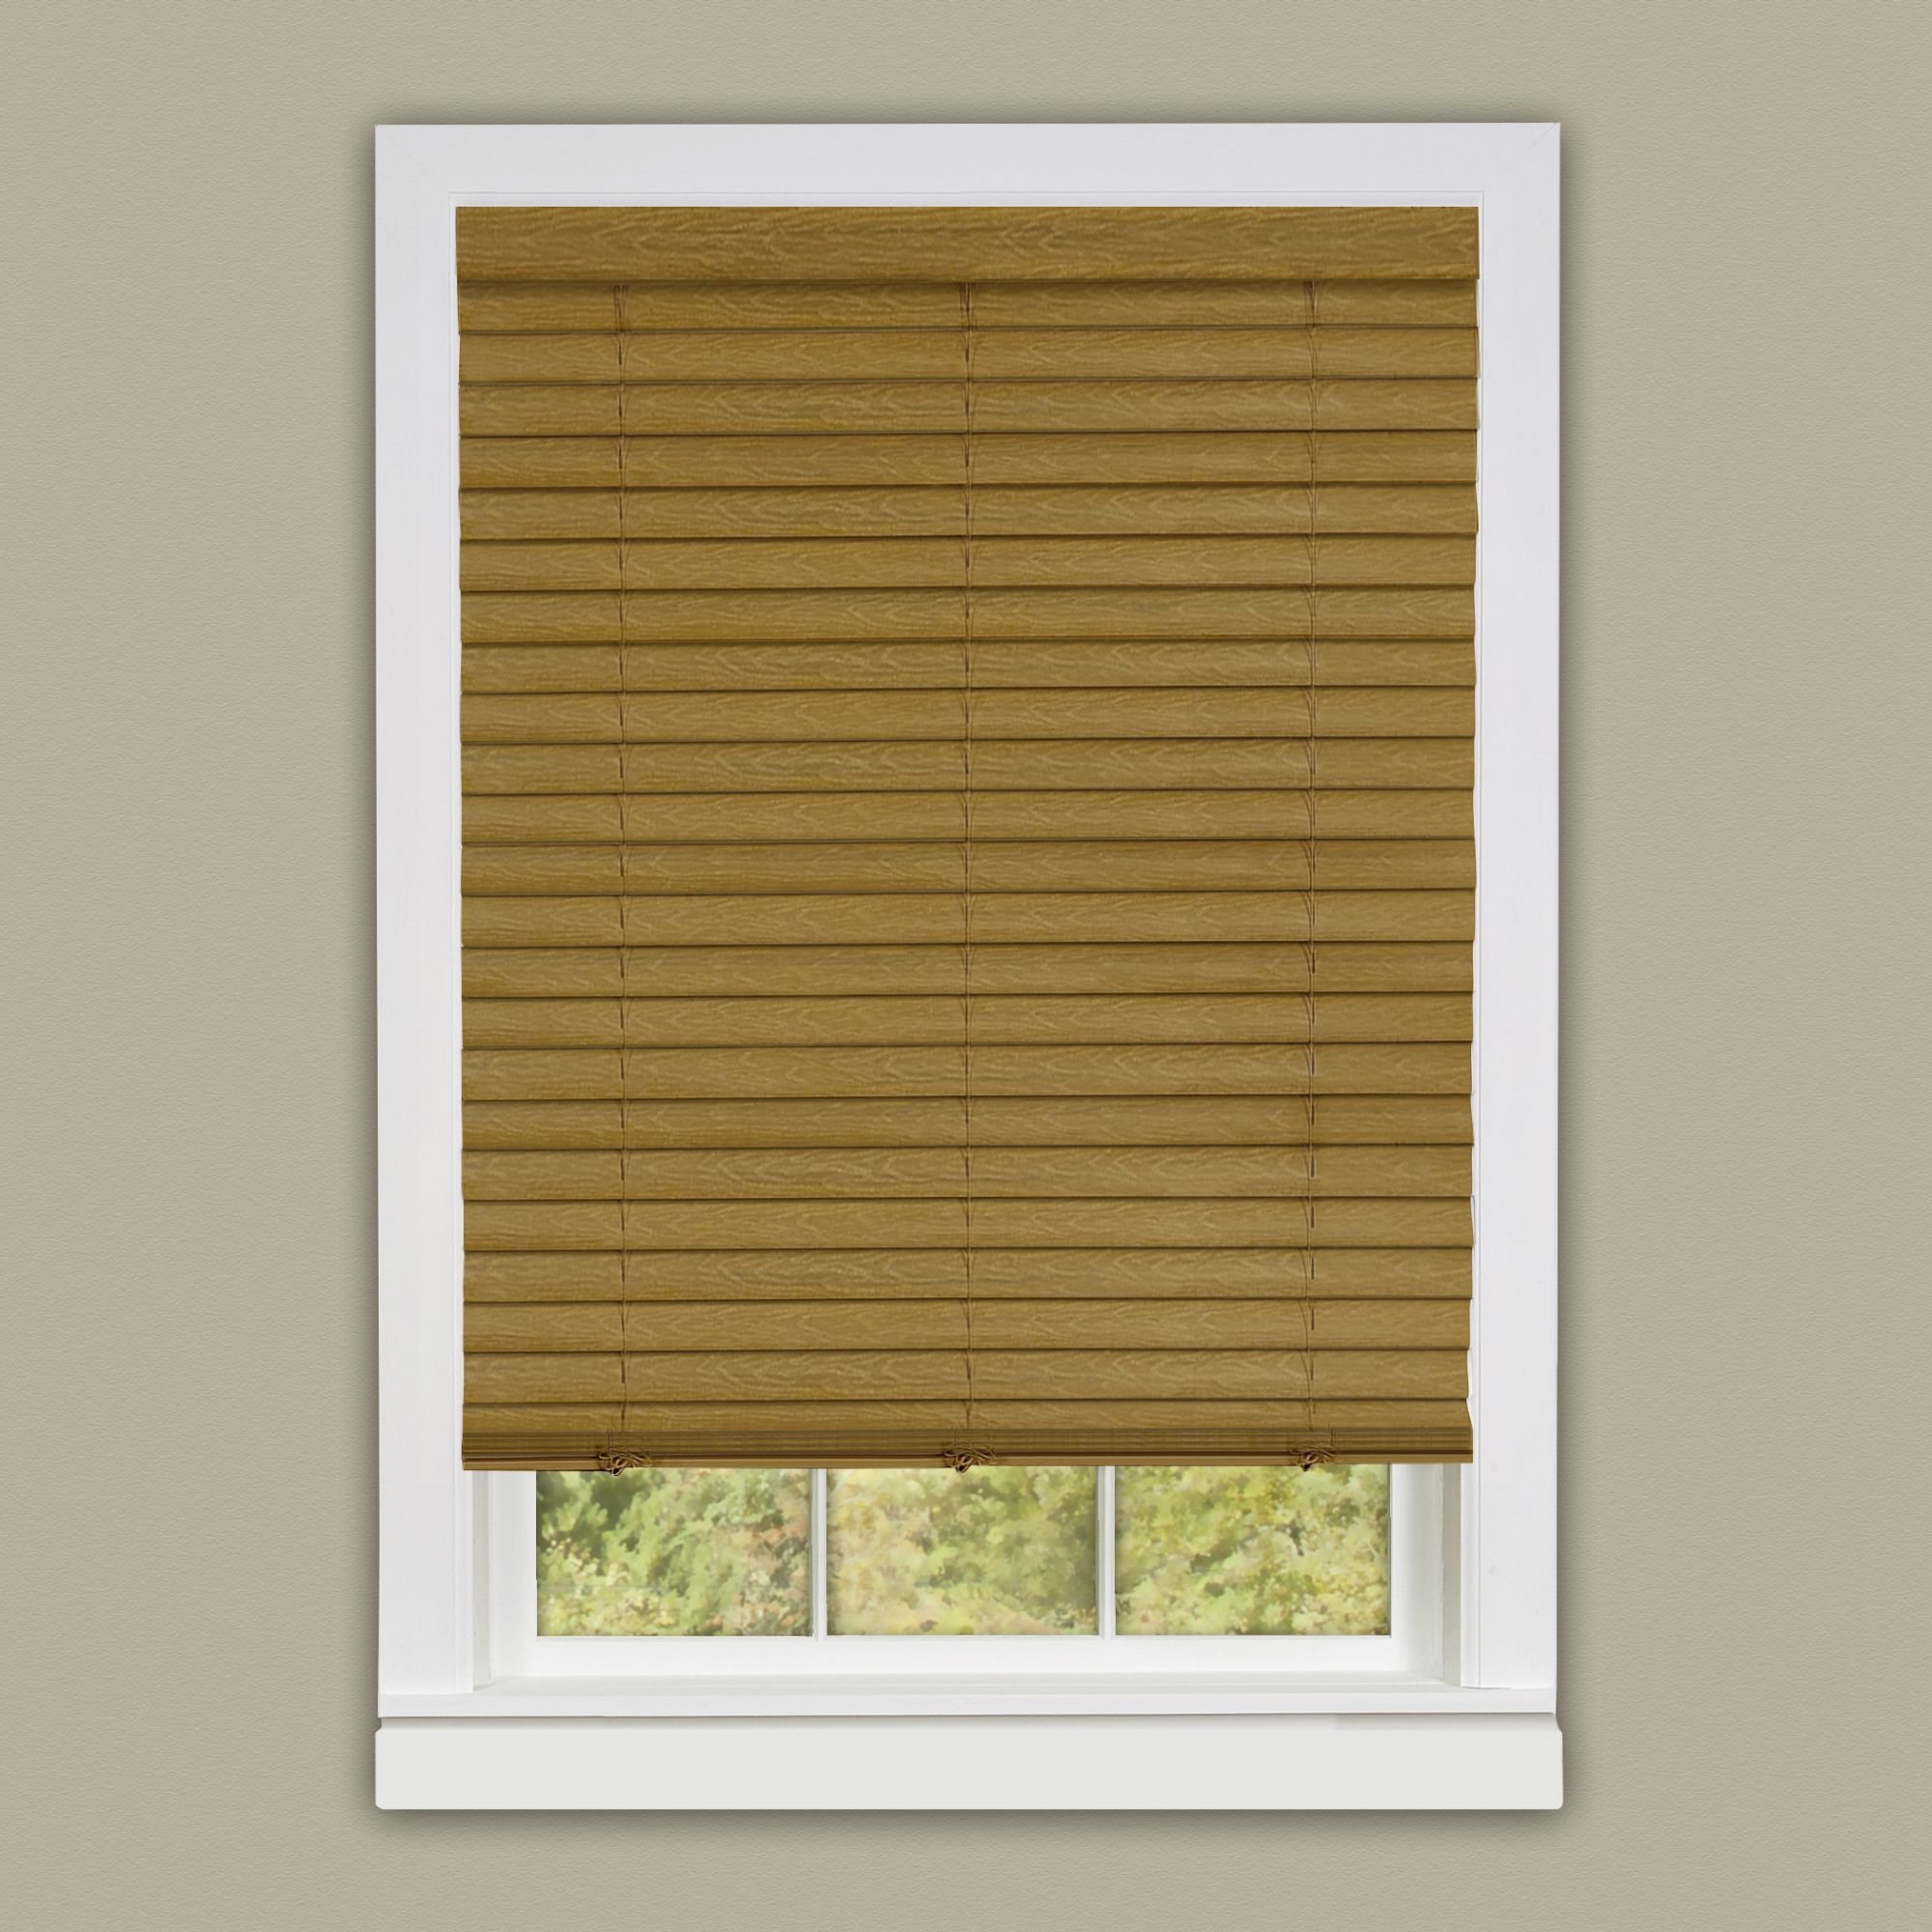 Excellent Menards Window Blinds for Best Window Blind Ideas: Menards Sale Ad | Menards Shades | Menards Window Blinds